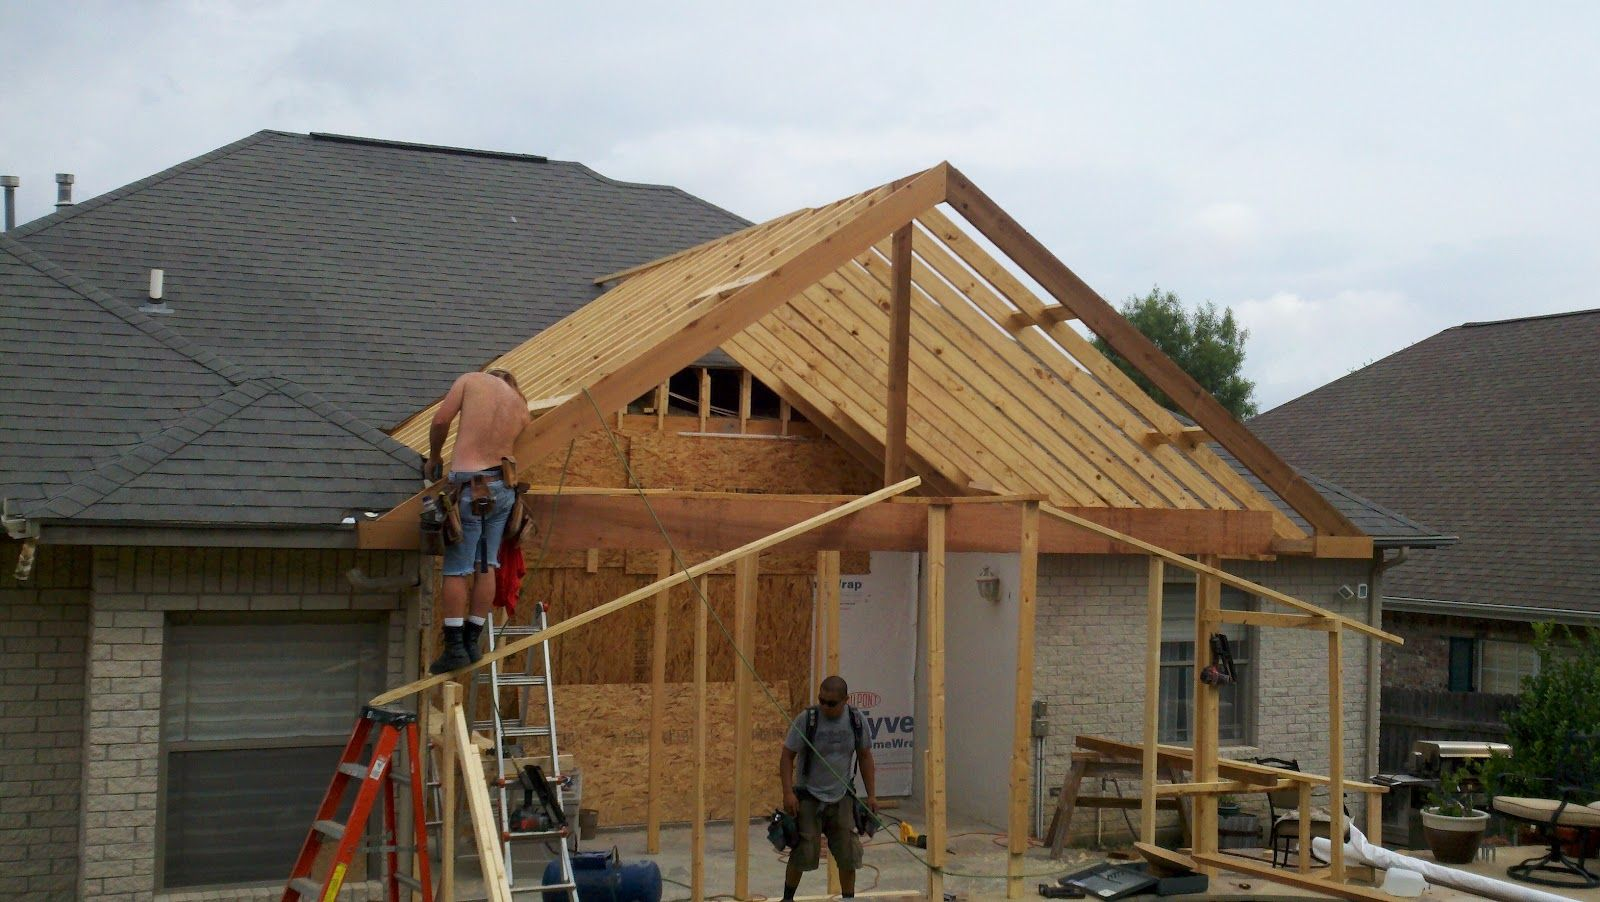 Room Additions With Covered Patio Austin | 1600 X 902 · 275 KB · Jpeg,